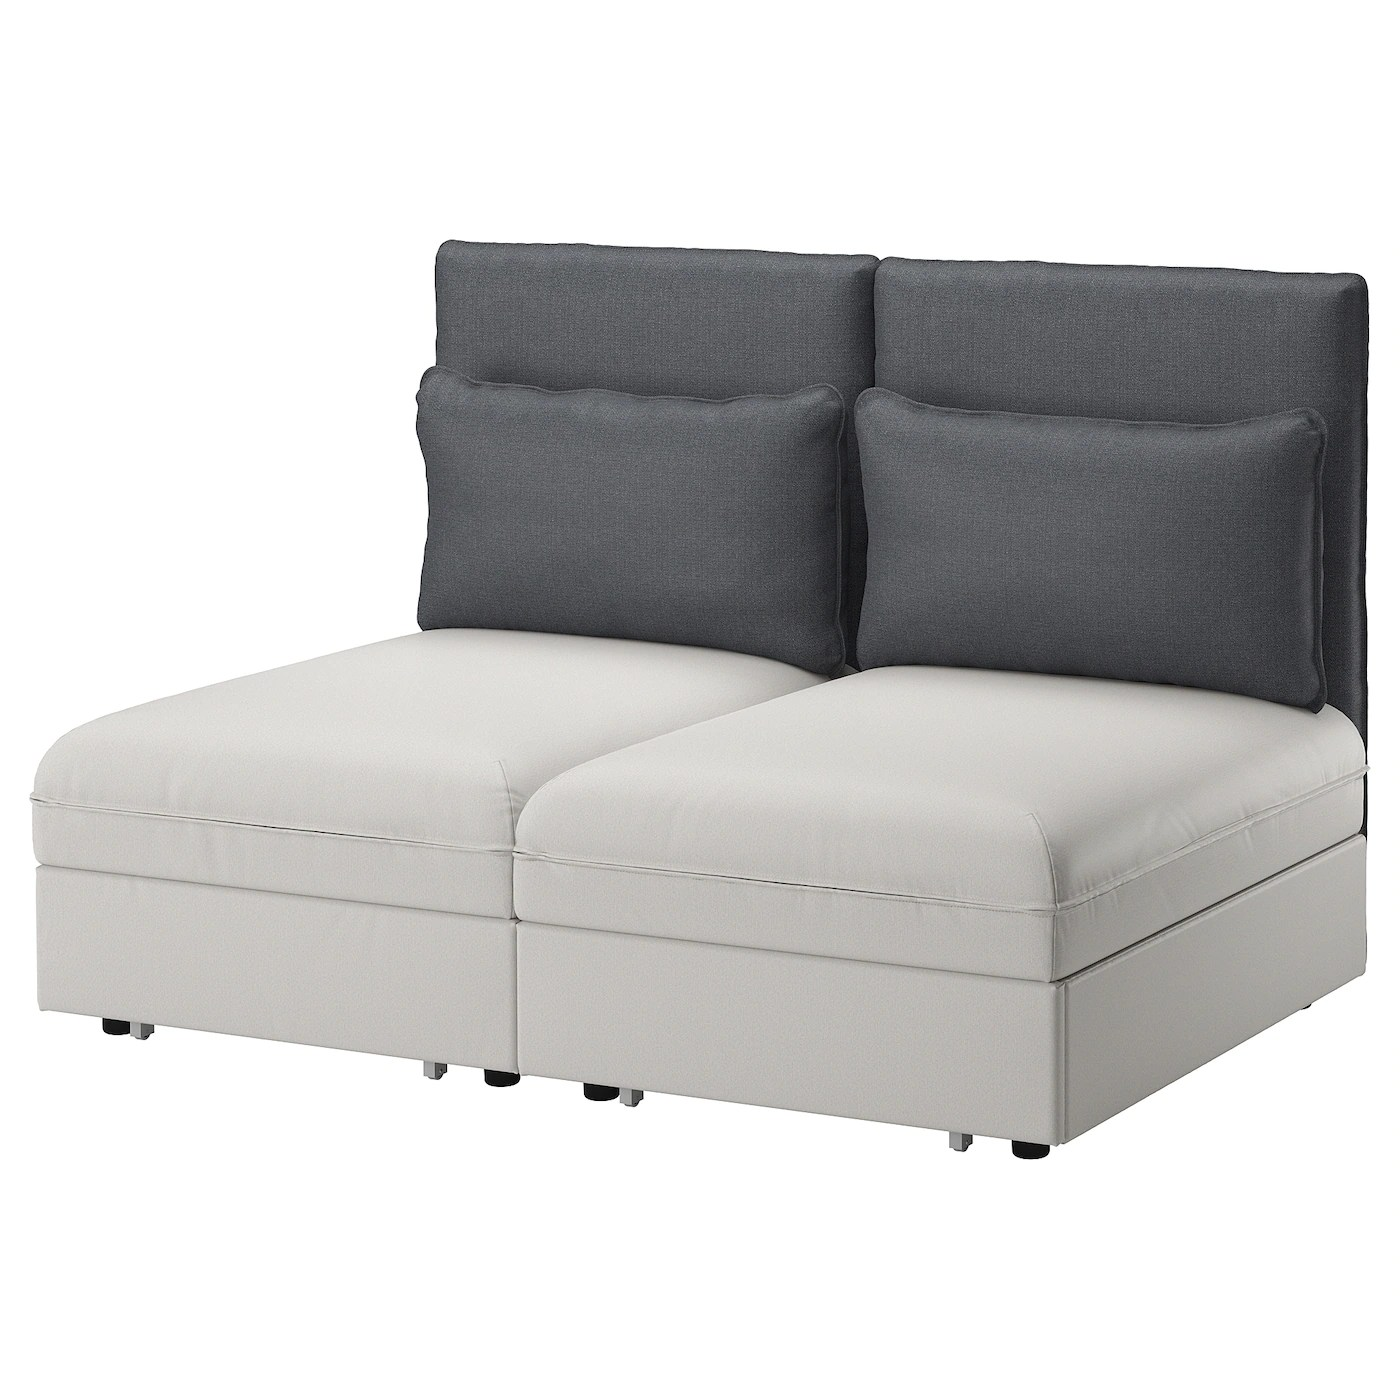 Sofa Vallentuna Vallentuna 2 Seat Sofa With Bed Ramna Light Grey Hillared